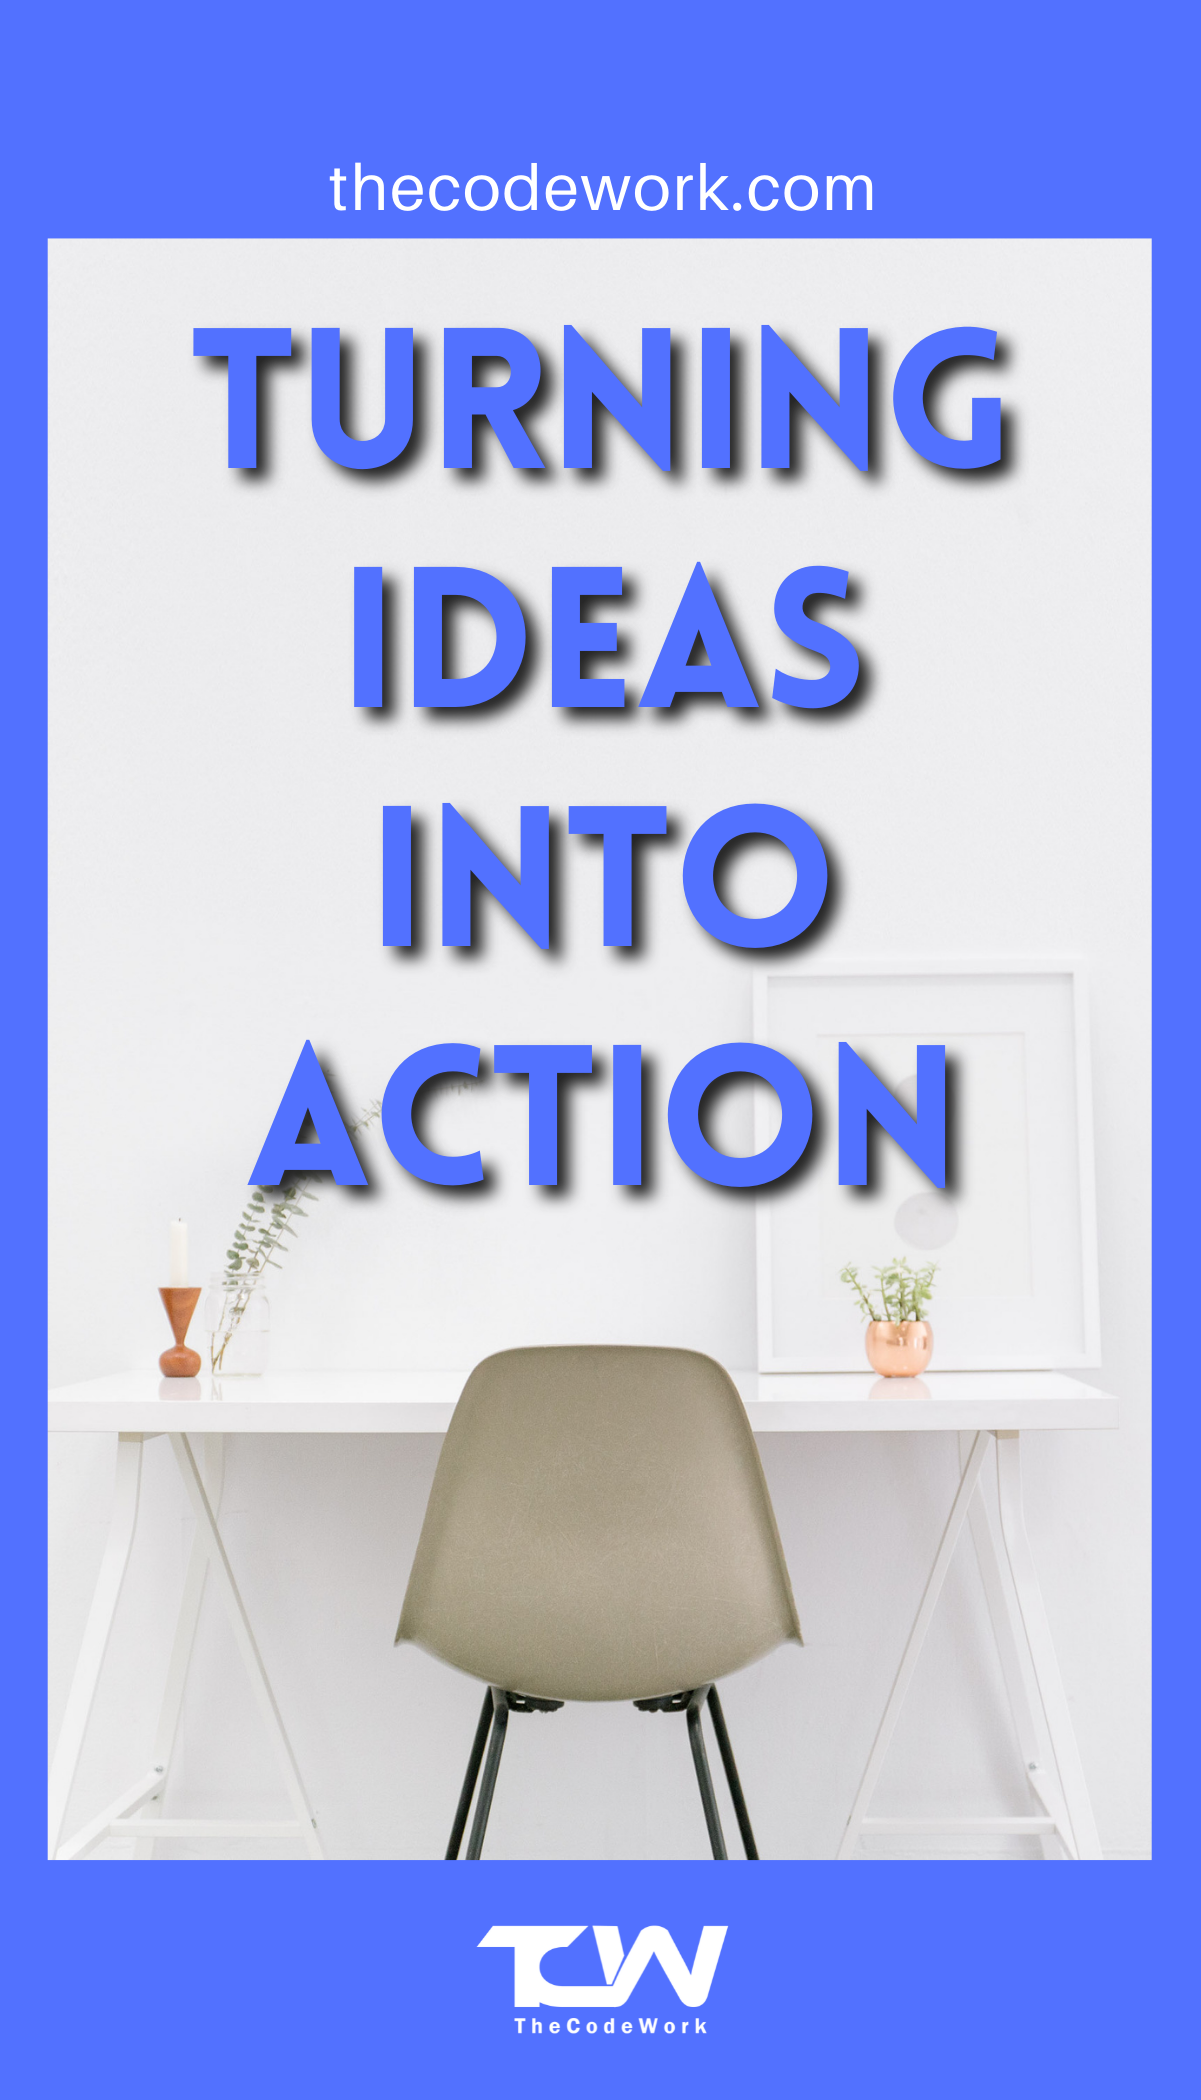 Turn your business ideas into actions